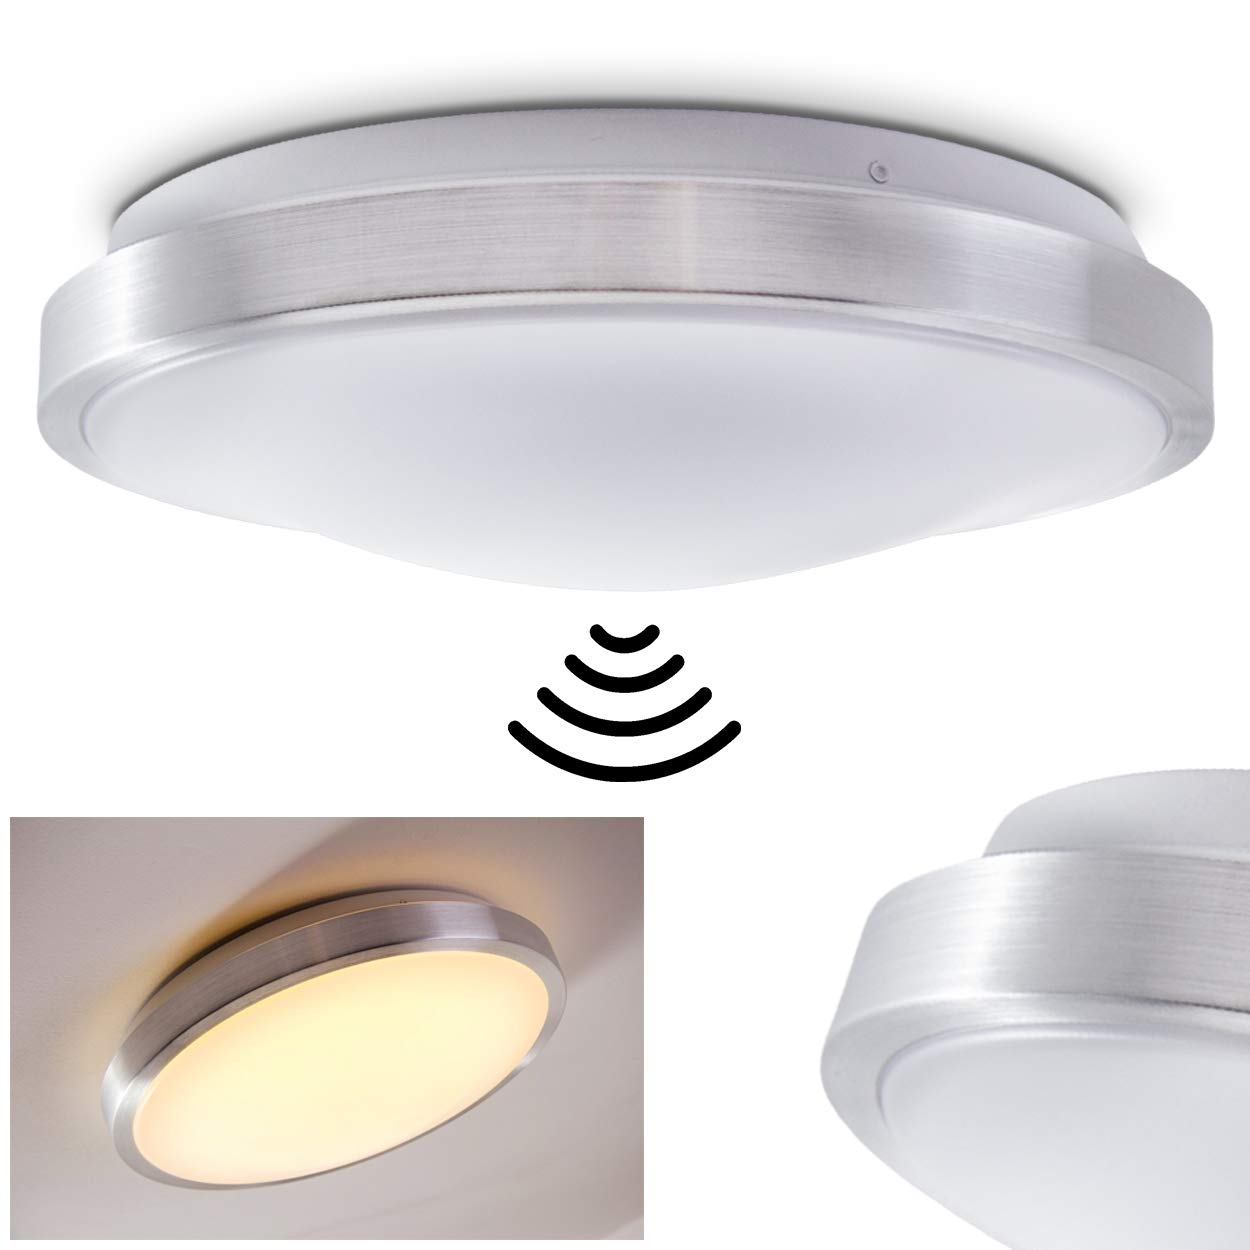 Wutach LED Ceiling Light with Motion Sensor 1 x 18 W, 1380 Lumen, 3000 Kelvin, suitable for Bathroom hofstein H166476